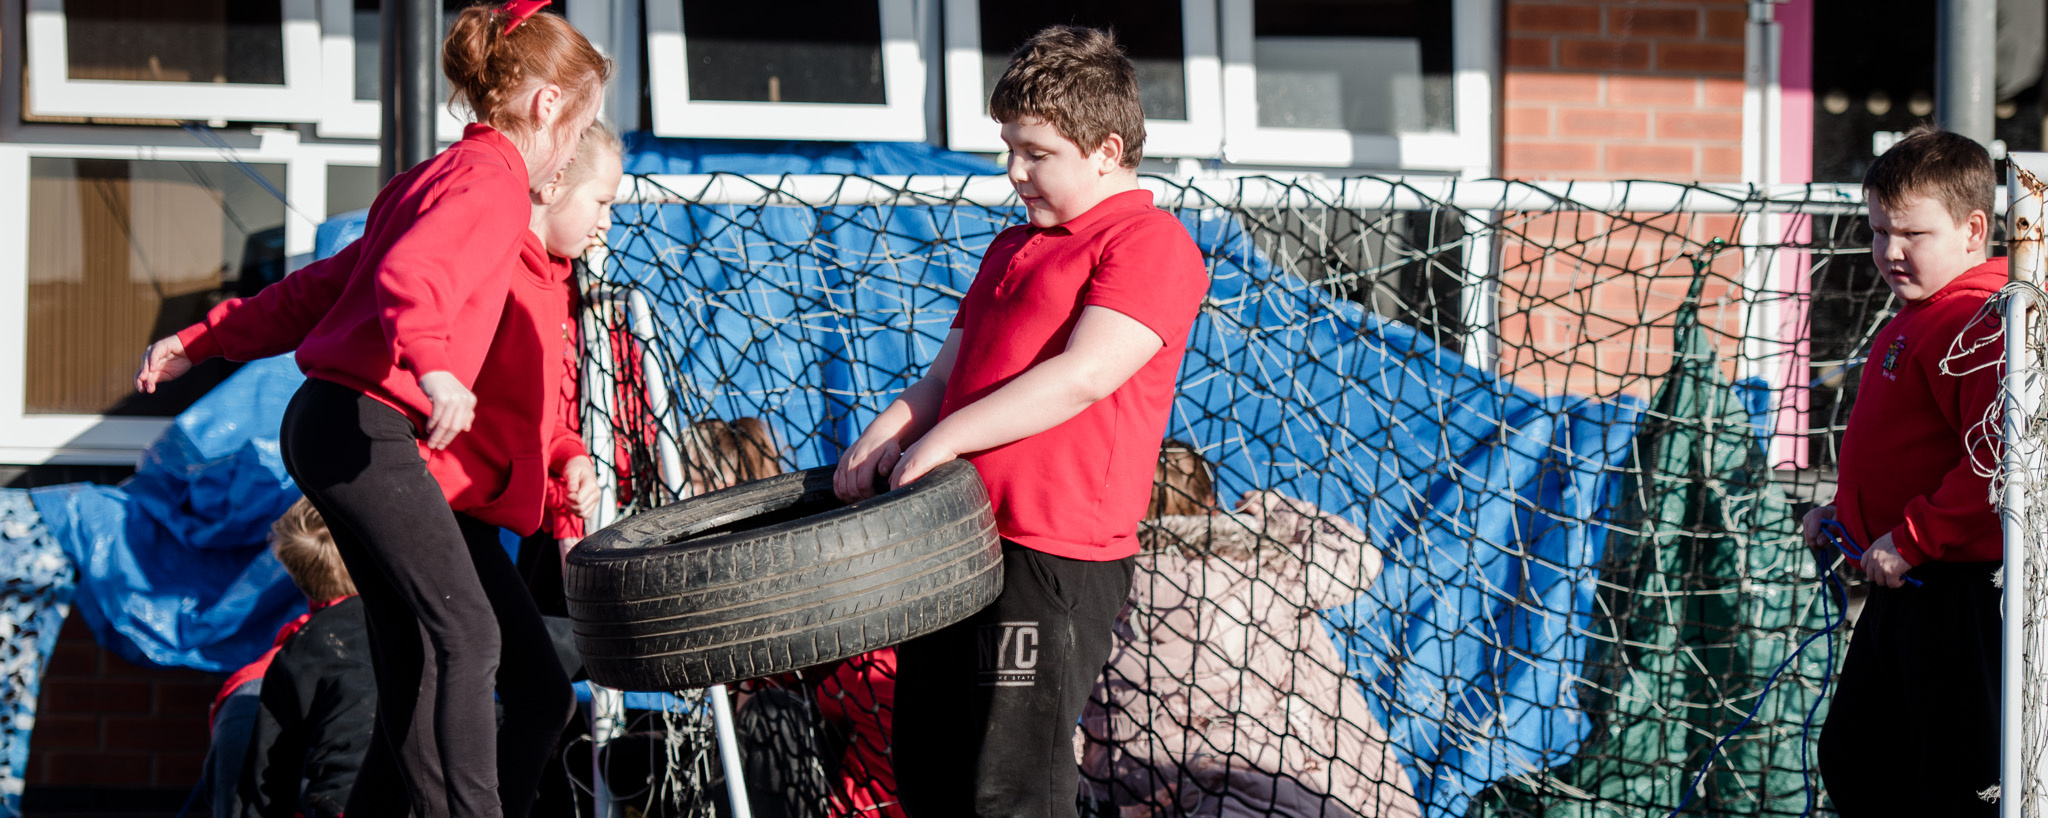 Children playing with tyres in school playground